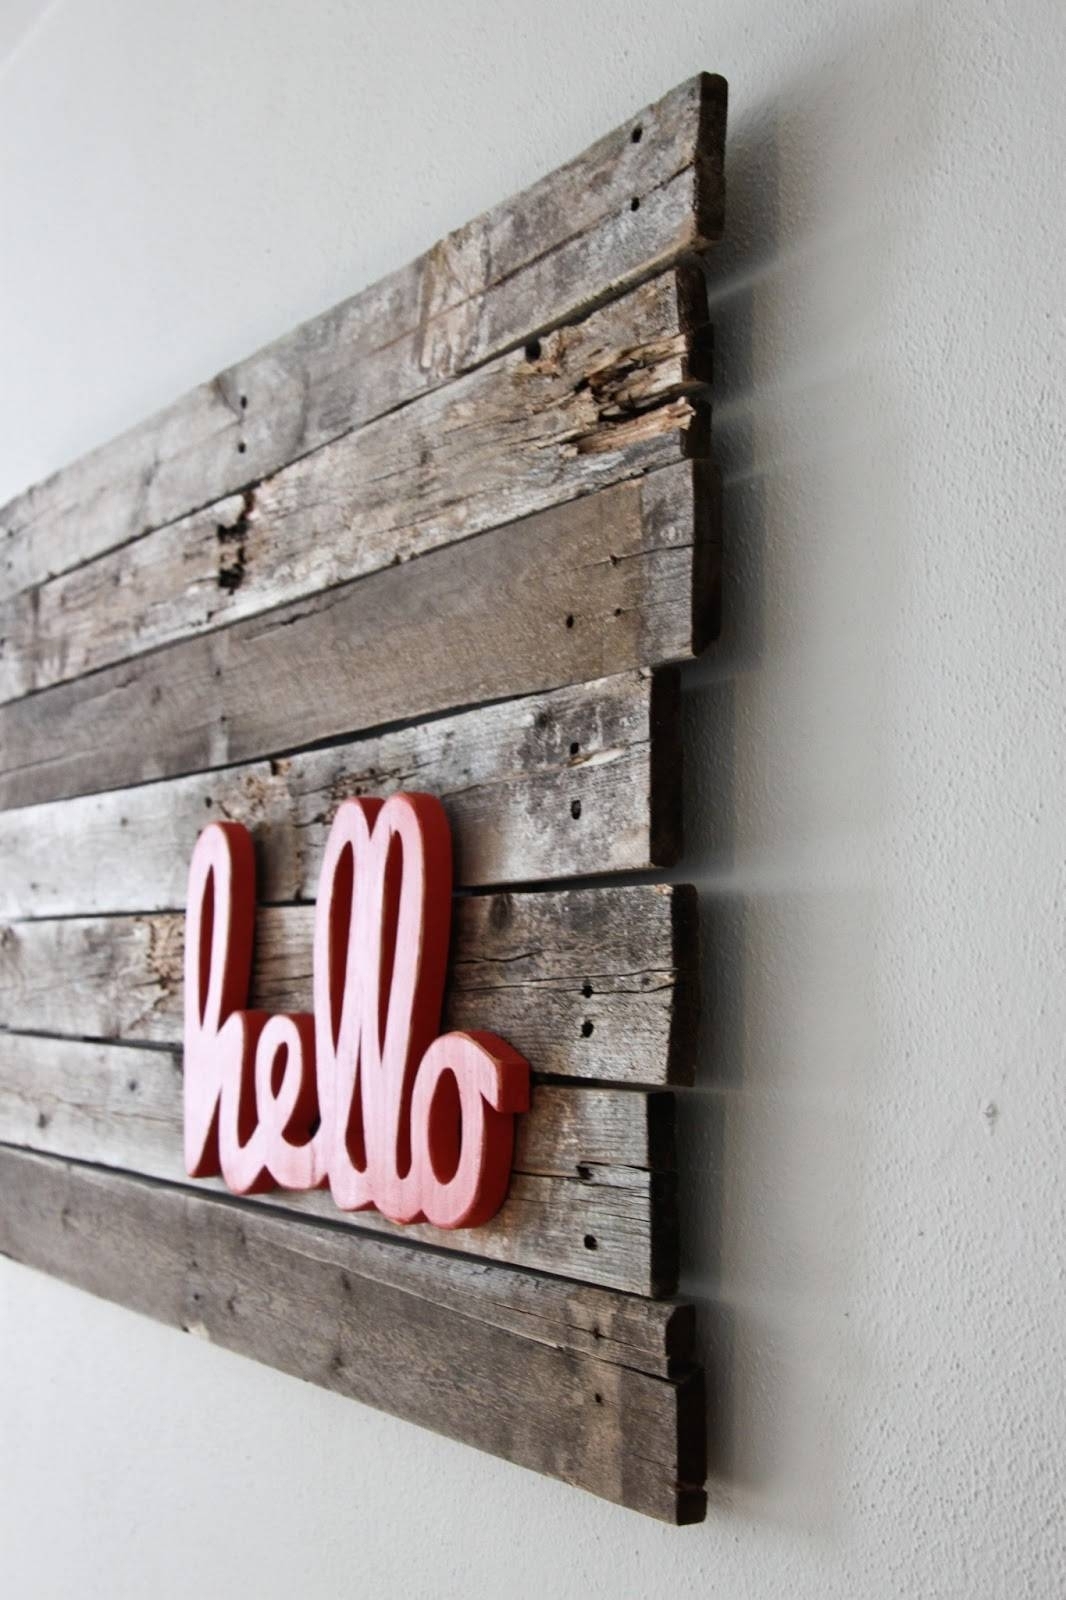 Wall Art Words Wooden Saw Word Like – Dma Homes | #89896 Pertaining To Most Recently Released 3d Wall Art Words (View 3 of 20)